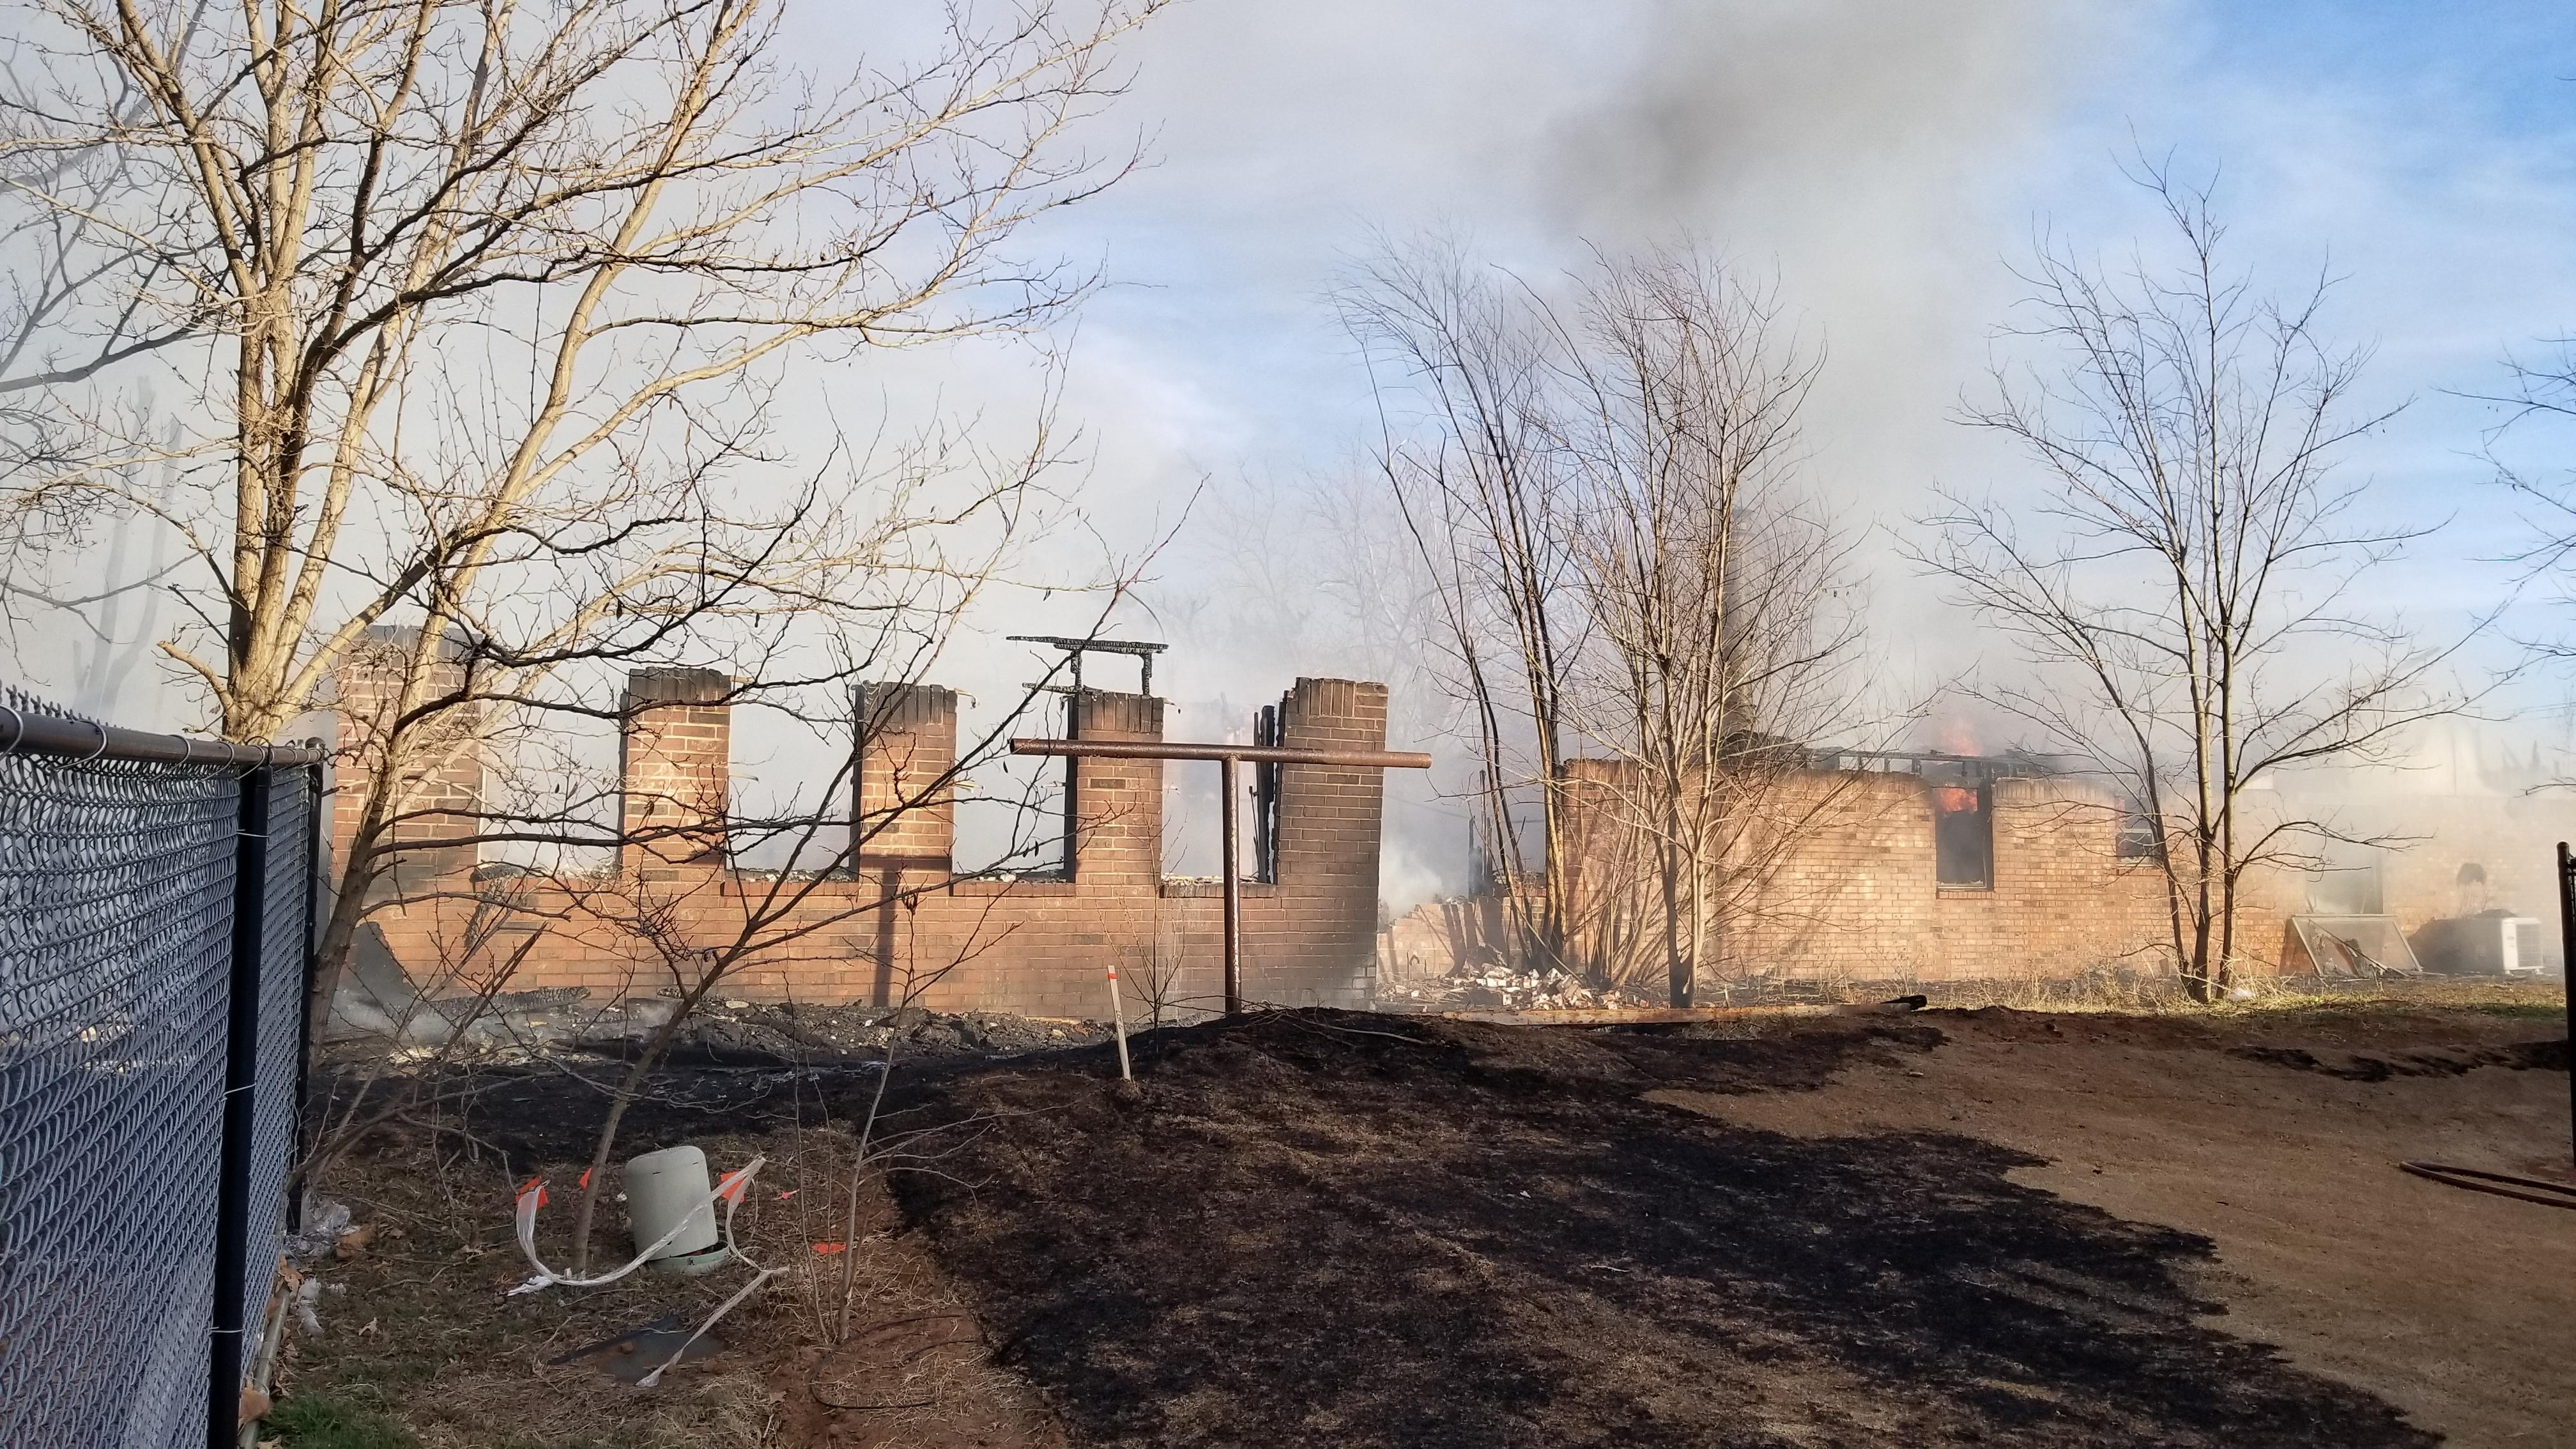 Two homes were destroyed in a grass fire Jan. 30 in Logan County. (KOKH/Steven Anderson)